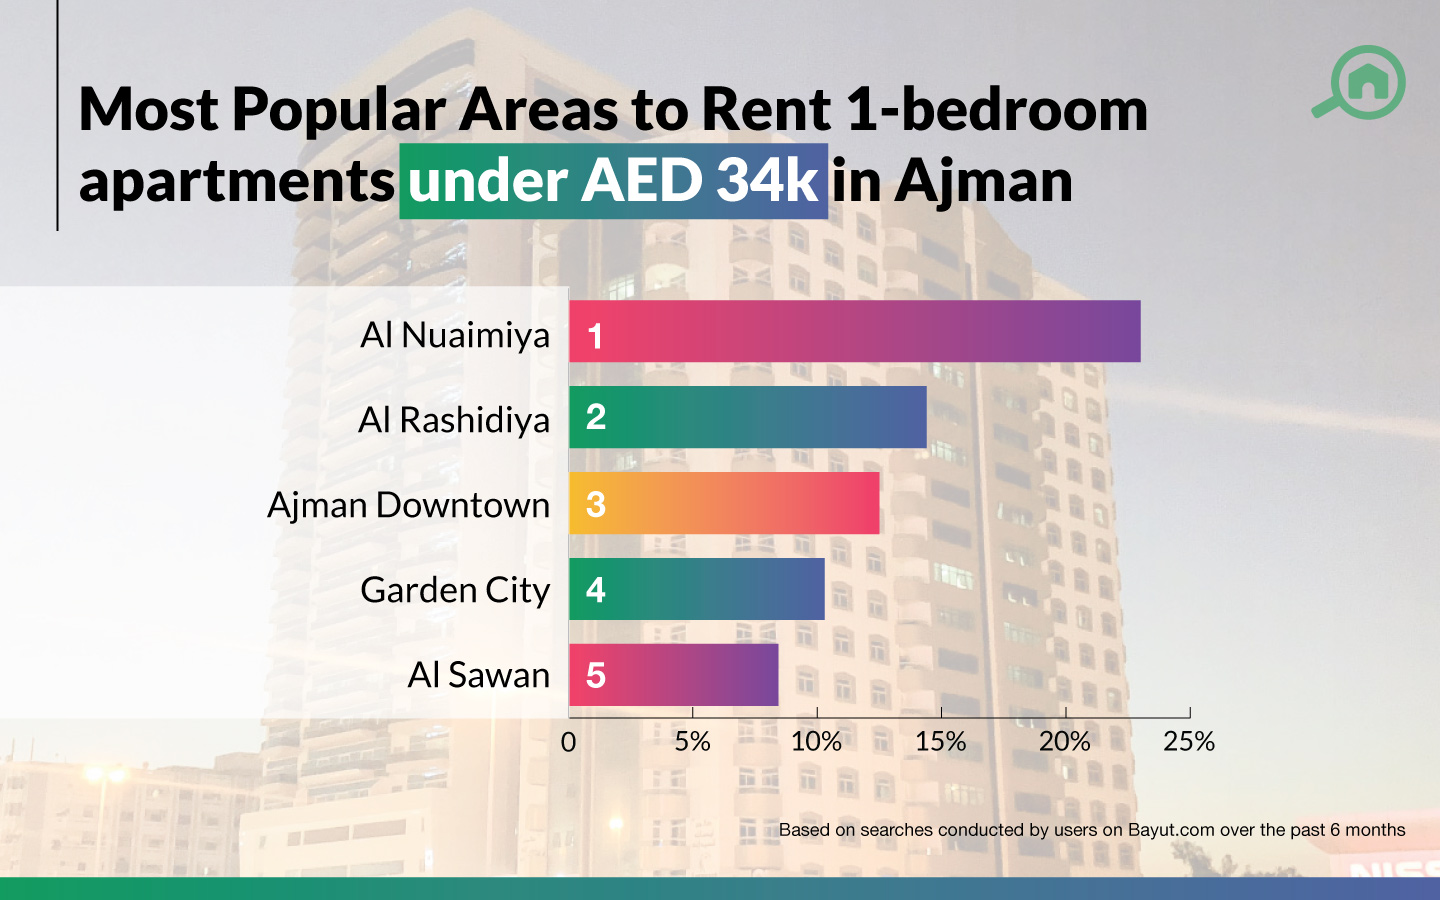 popular places in Ajman to rent 1-bed apartments under AED 34k